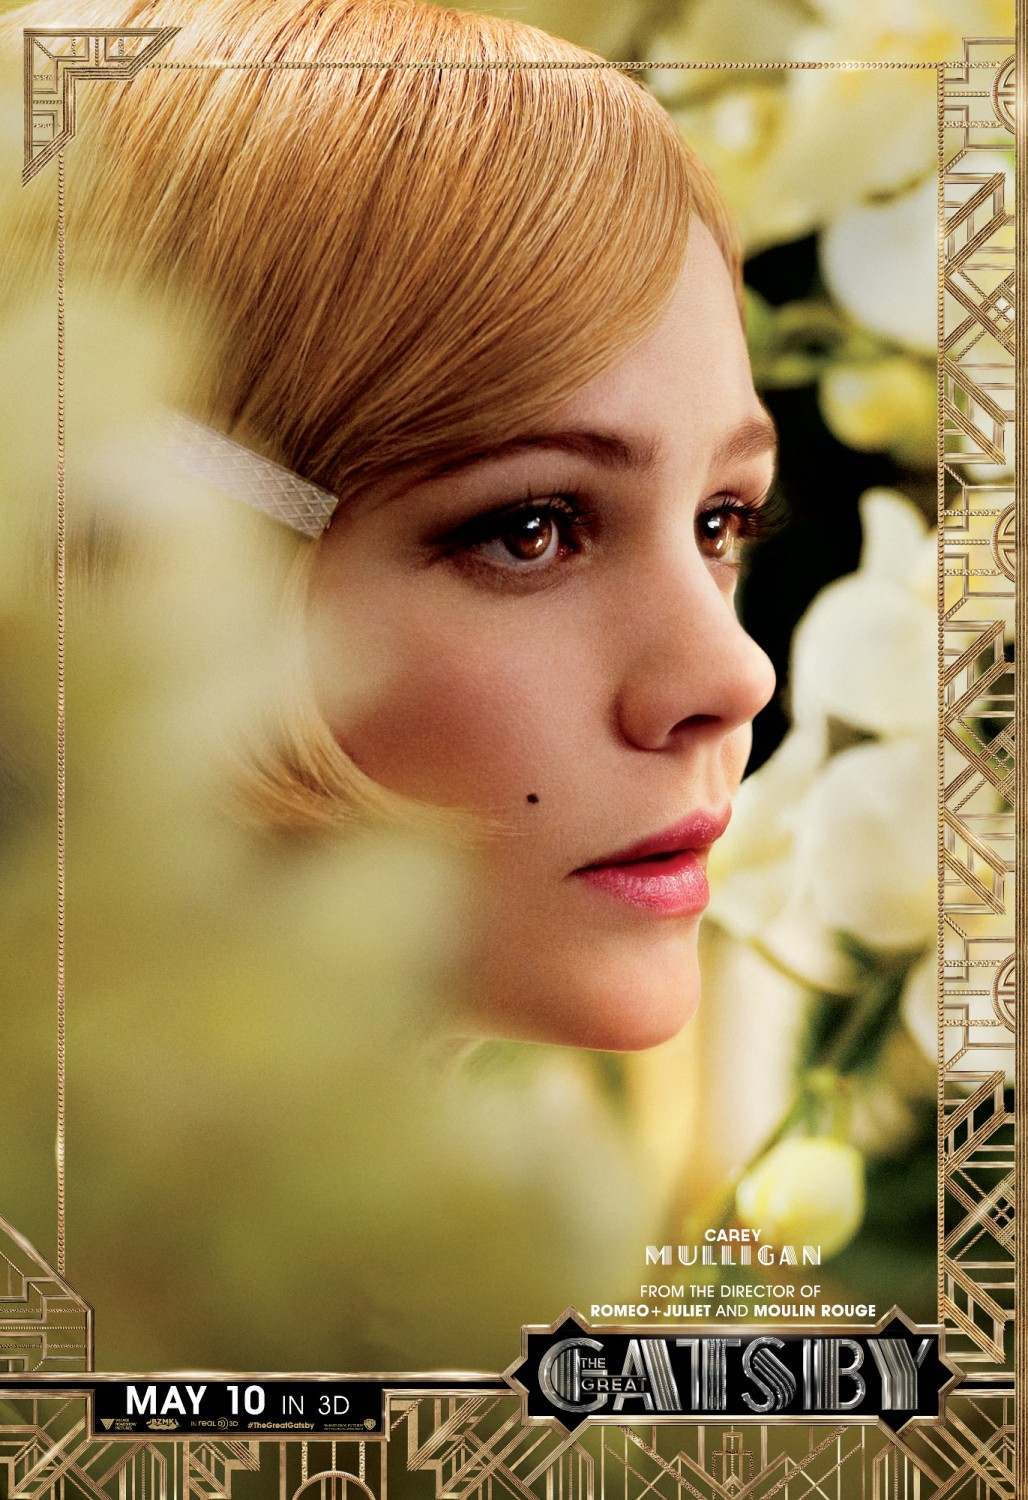 Isla Fisher The Great Gatsby #6975785 7 Themes  - isla fisher in the great gatsby wallpapers